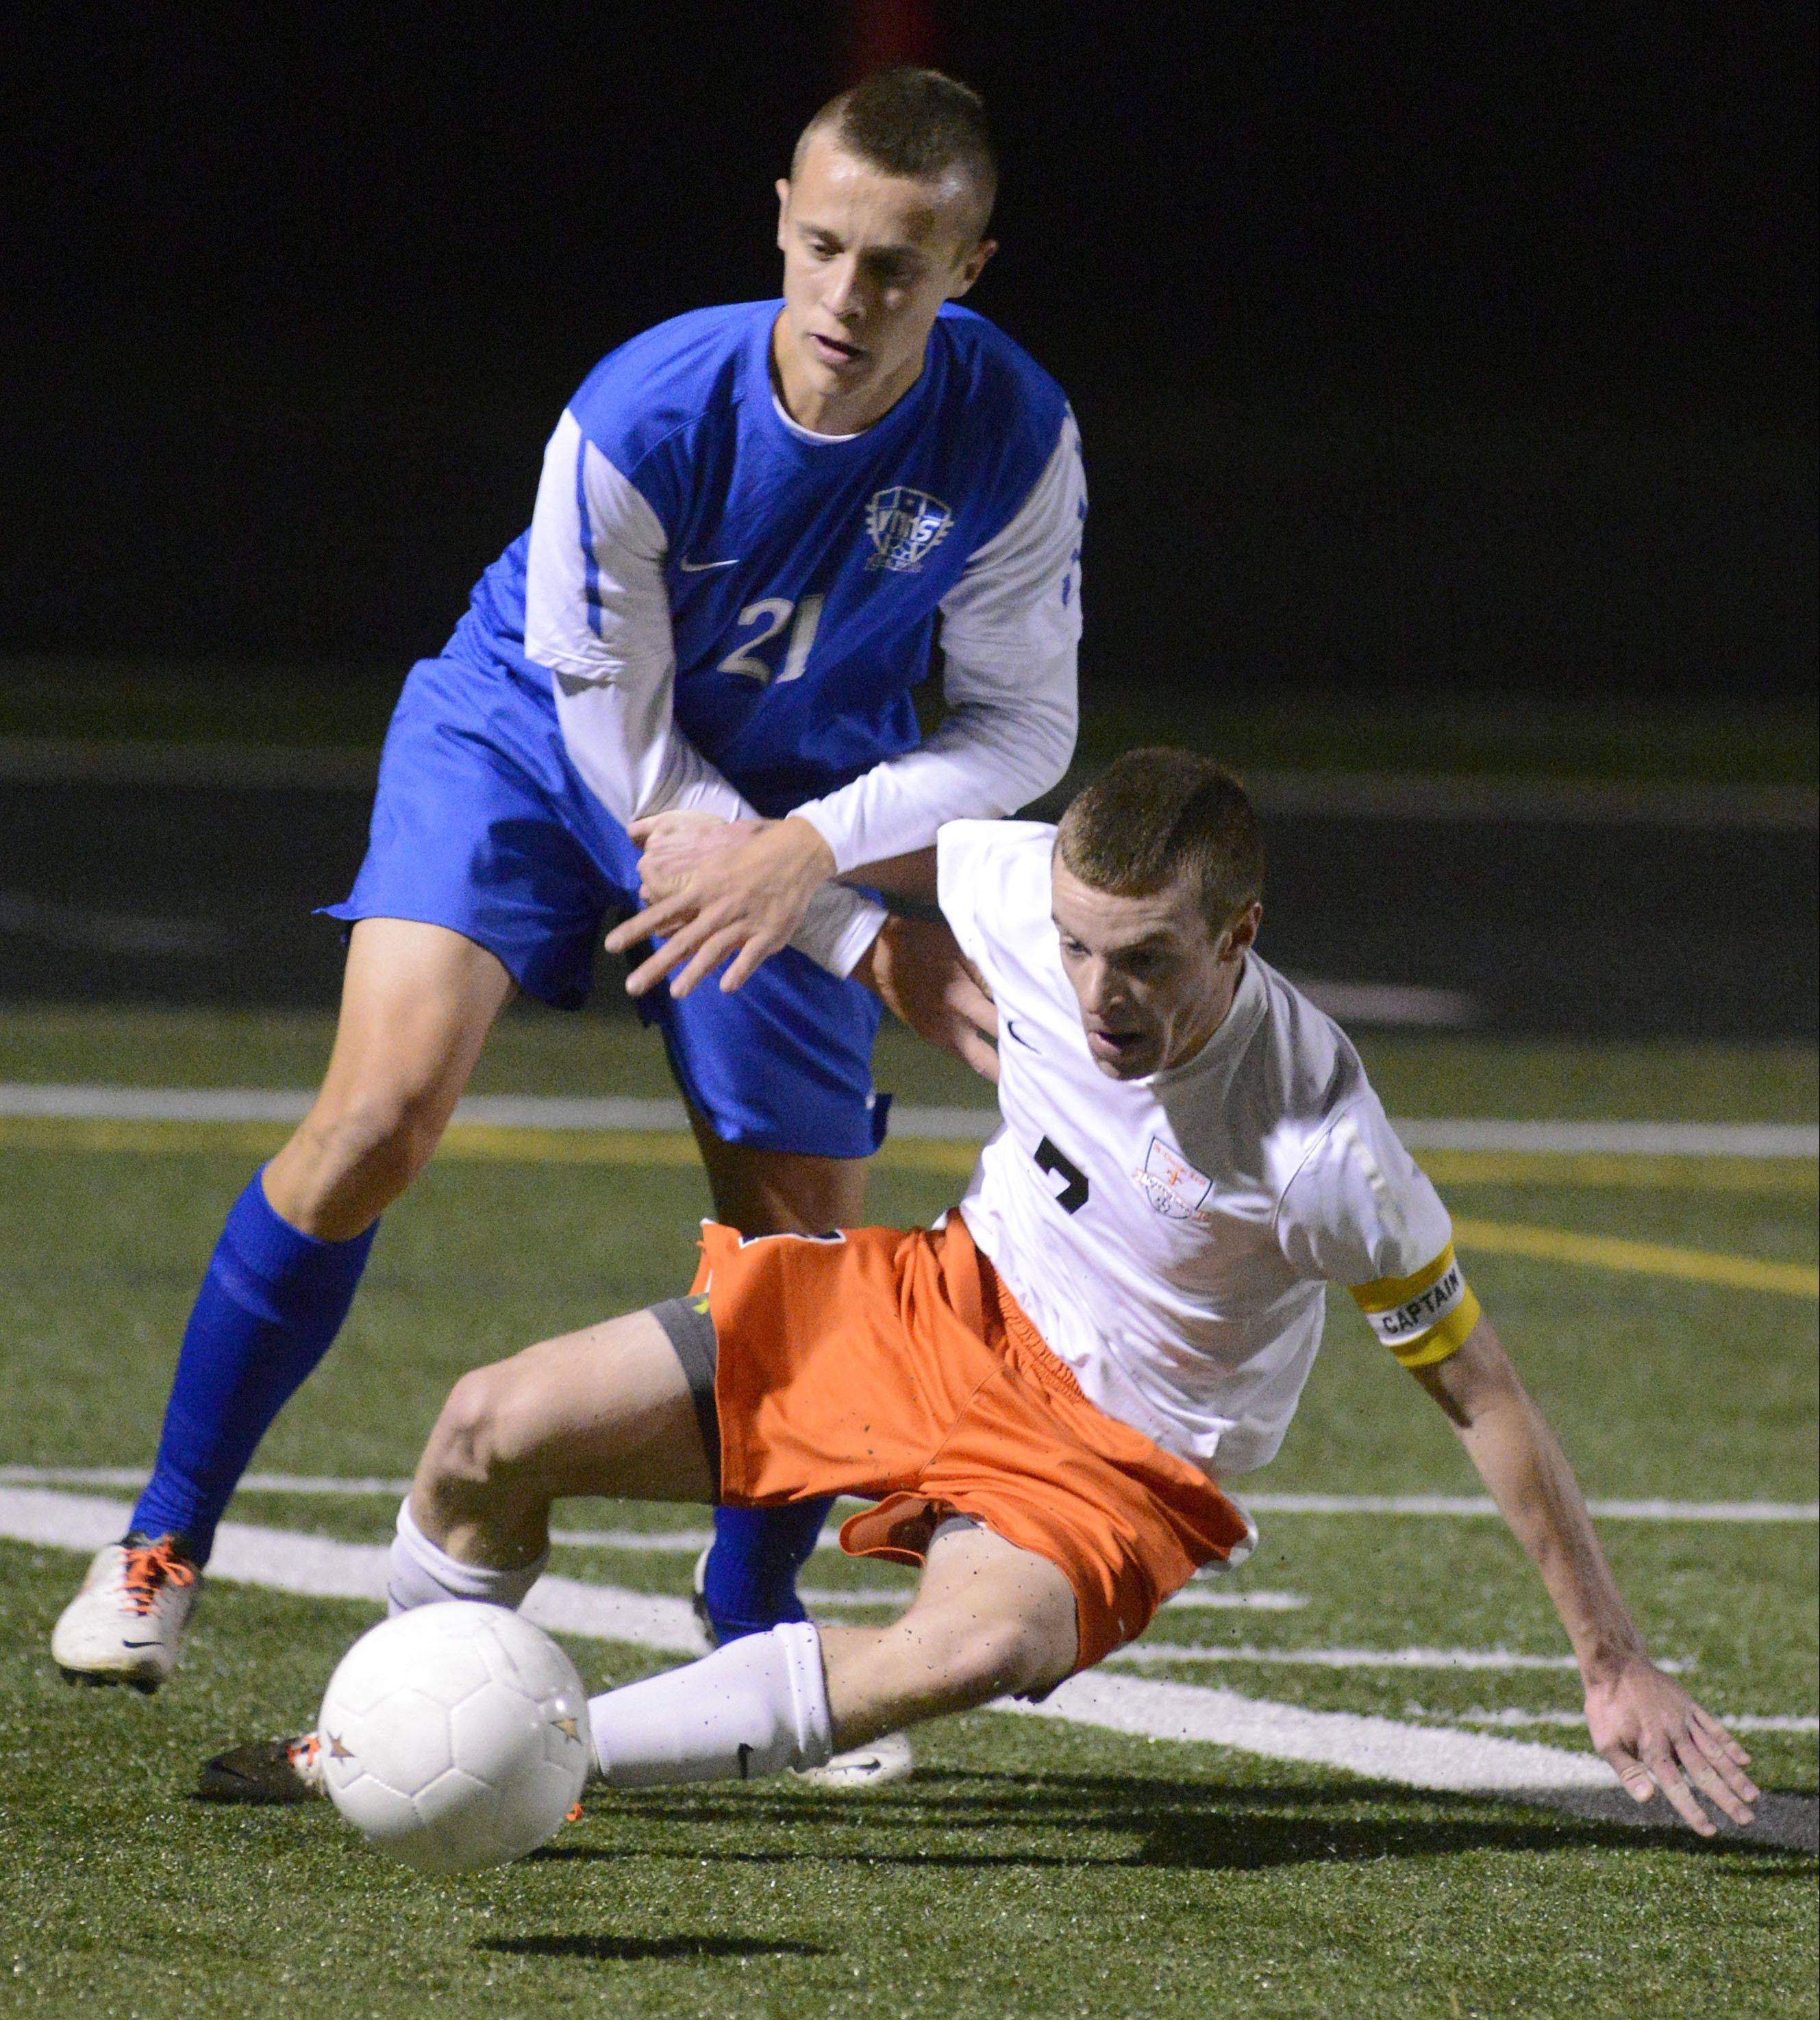 Wheaton North's Zach Oslund and St. Charles East's Jacob Sterling fight for the ball.